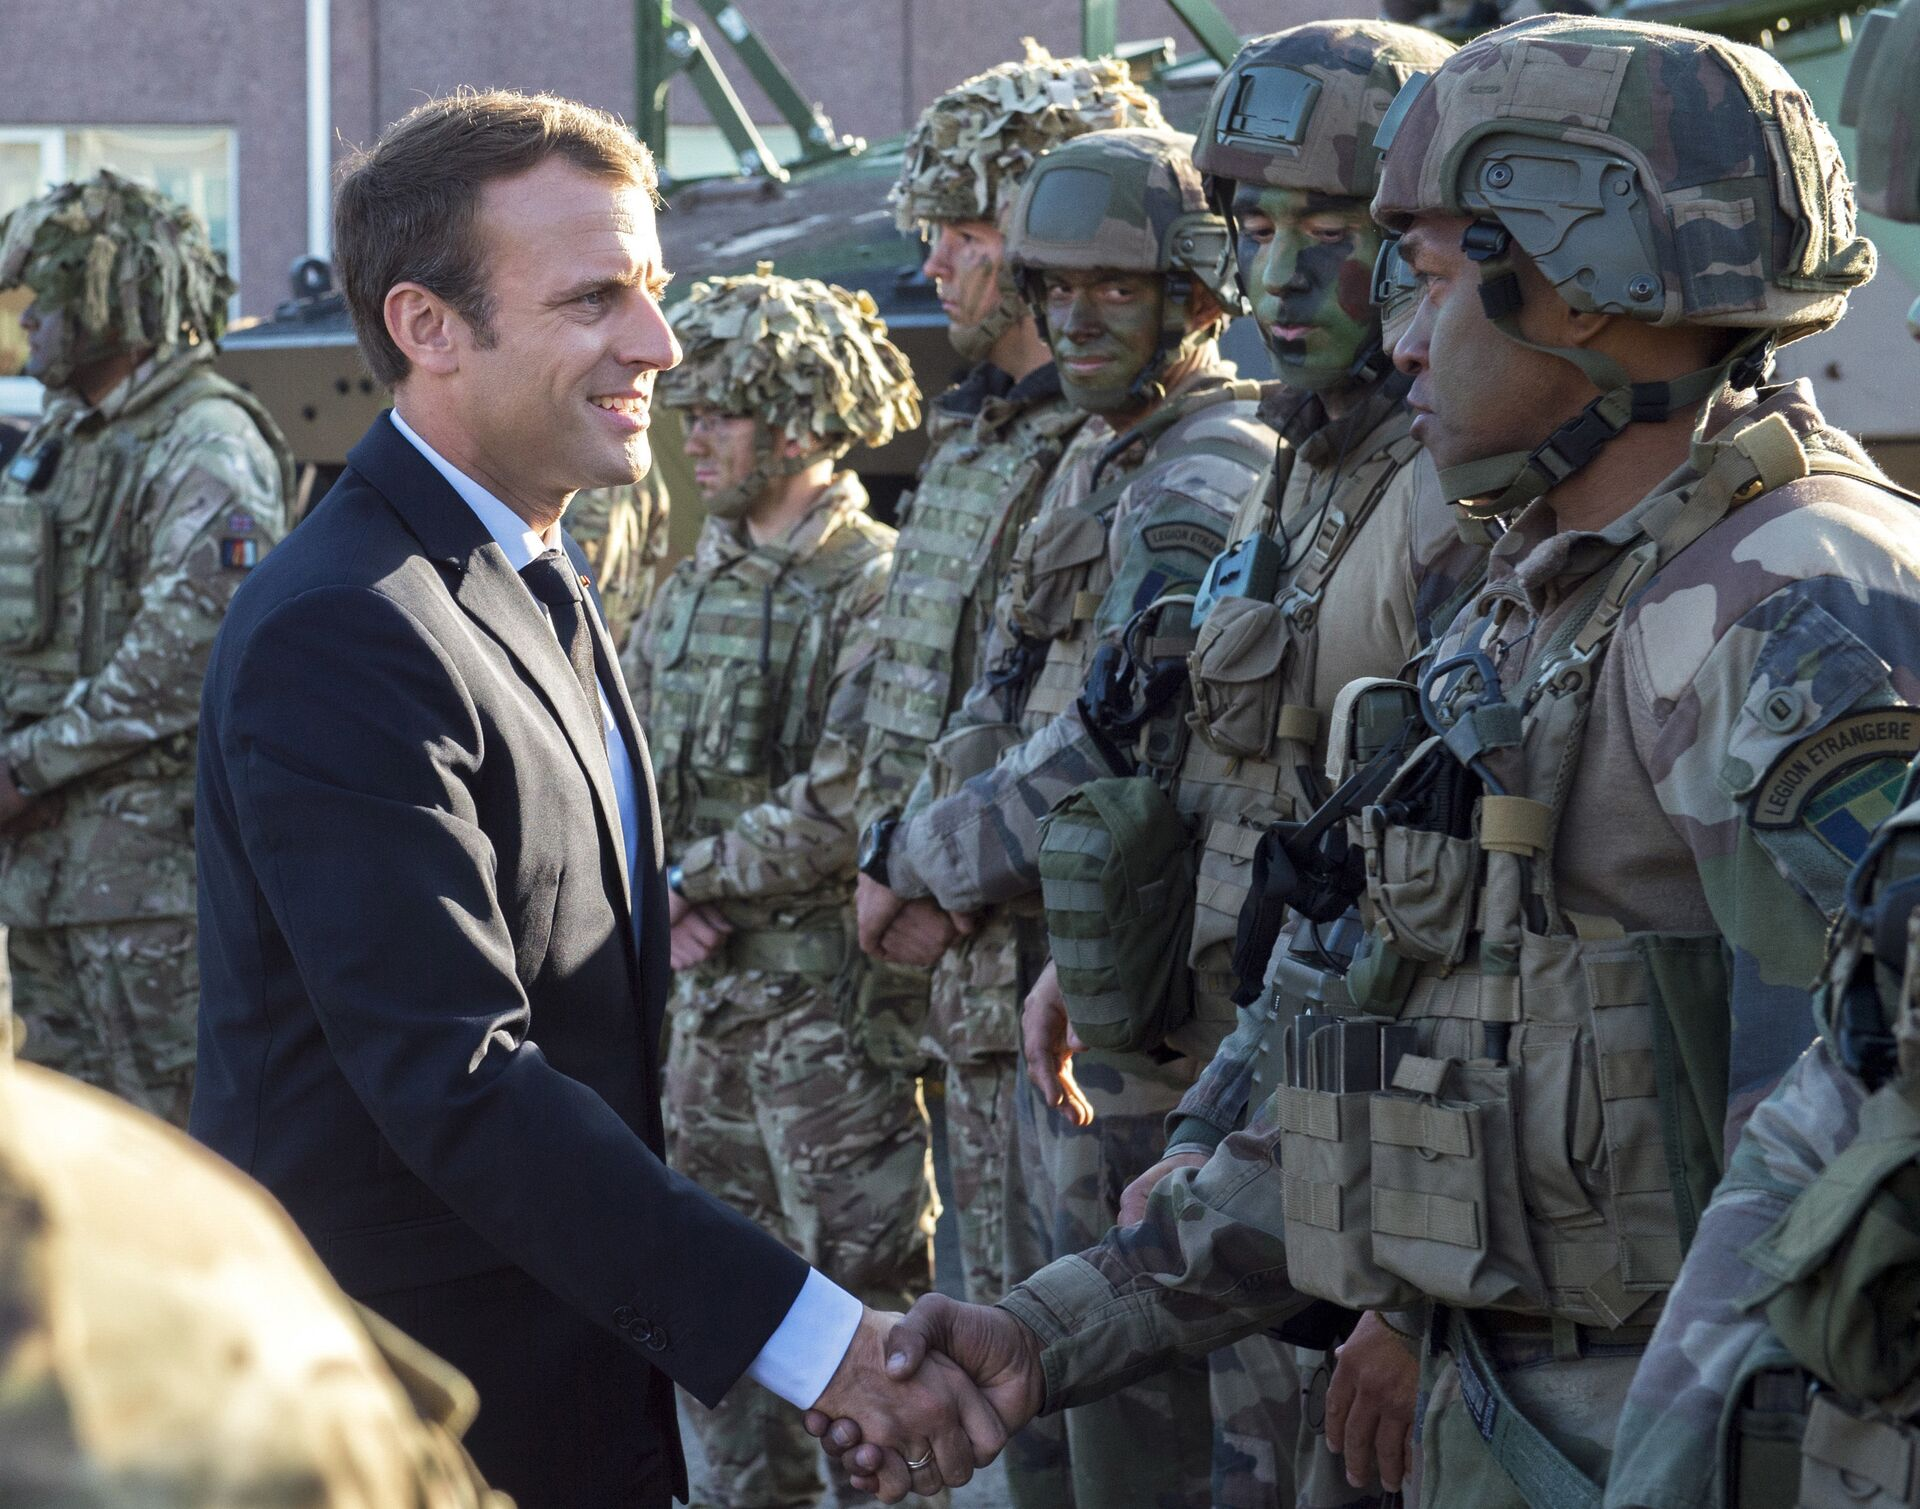 FILE - In this Friday, Sept. 29, 2017 file photo, France's President Emmanuel Macron, left, shakes hands with French soldiers of the NATO Battle Group at the Tapa military base, about 90 kilometers (56 miles) west of Tallinn, Estonia - Sputnik International, 1920, 28.09.2021